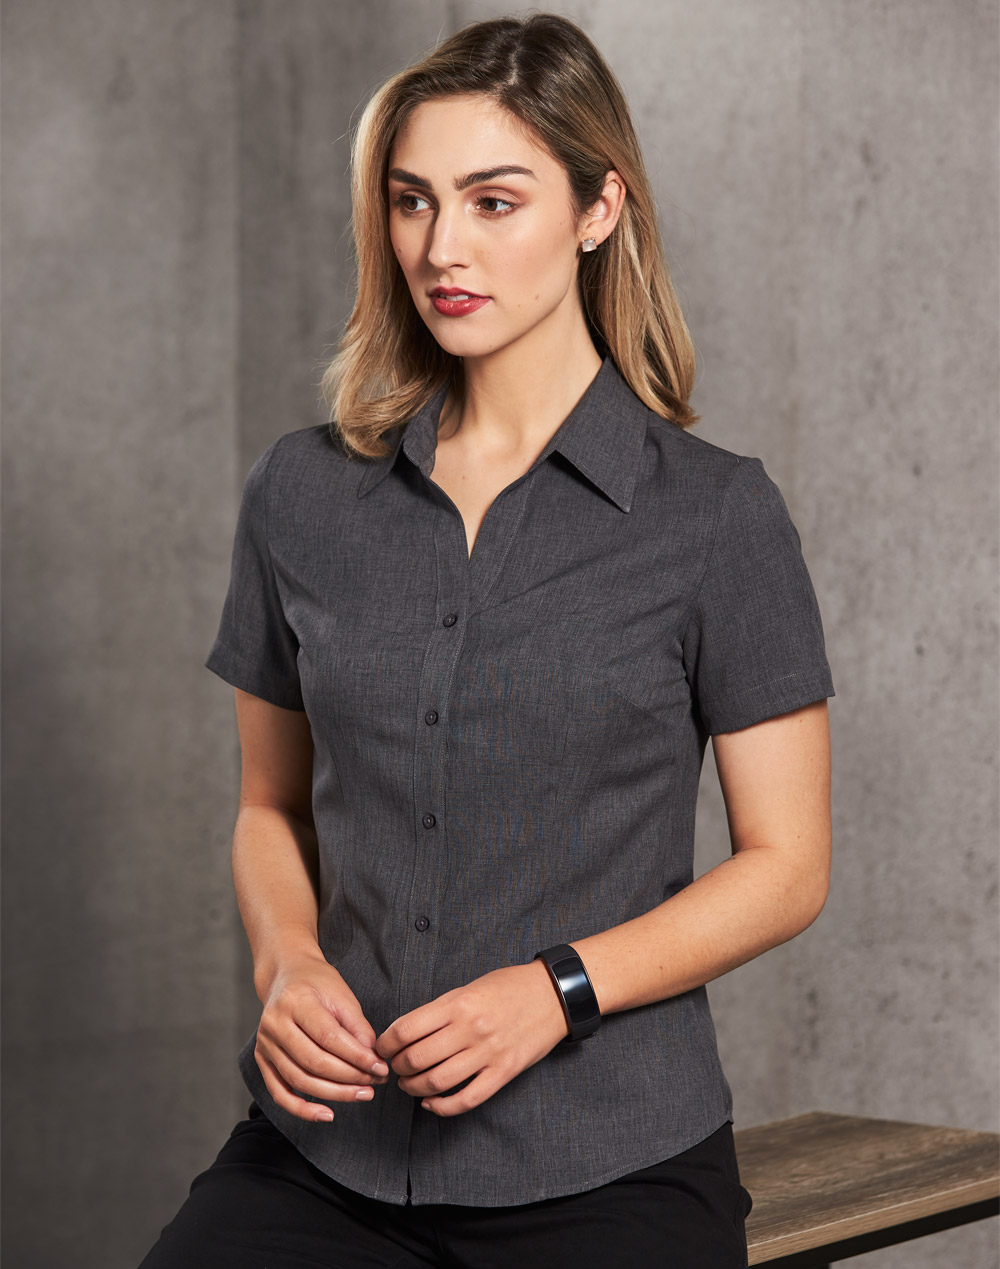 M8600S Women's CoolDry Short Sleeve Shirt